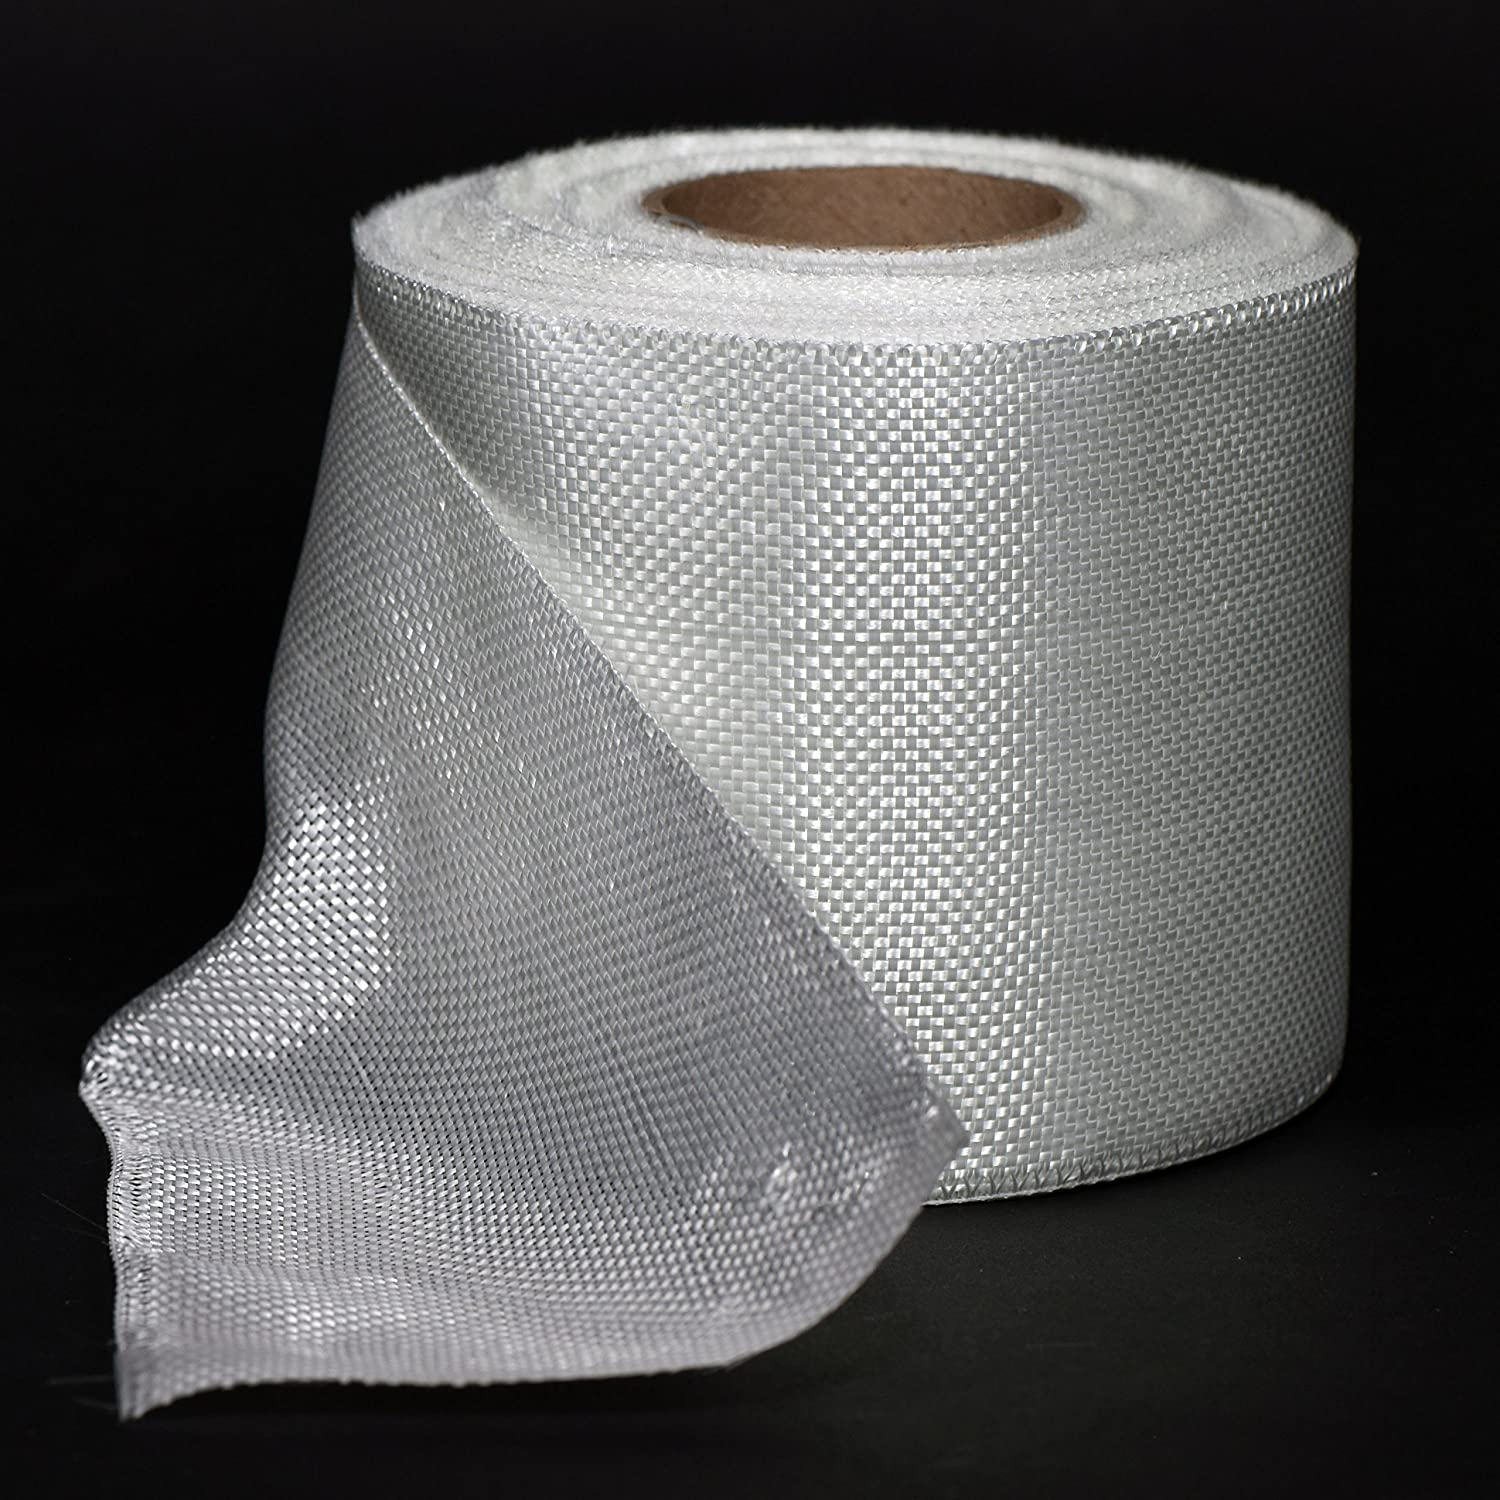 Fiberglass Cloth Tape 6oz 4' Wide by 50 Yards (10.16 cm x 4572 cm) Rayplex Limited